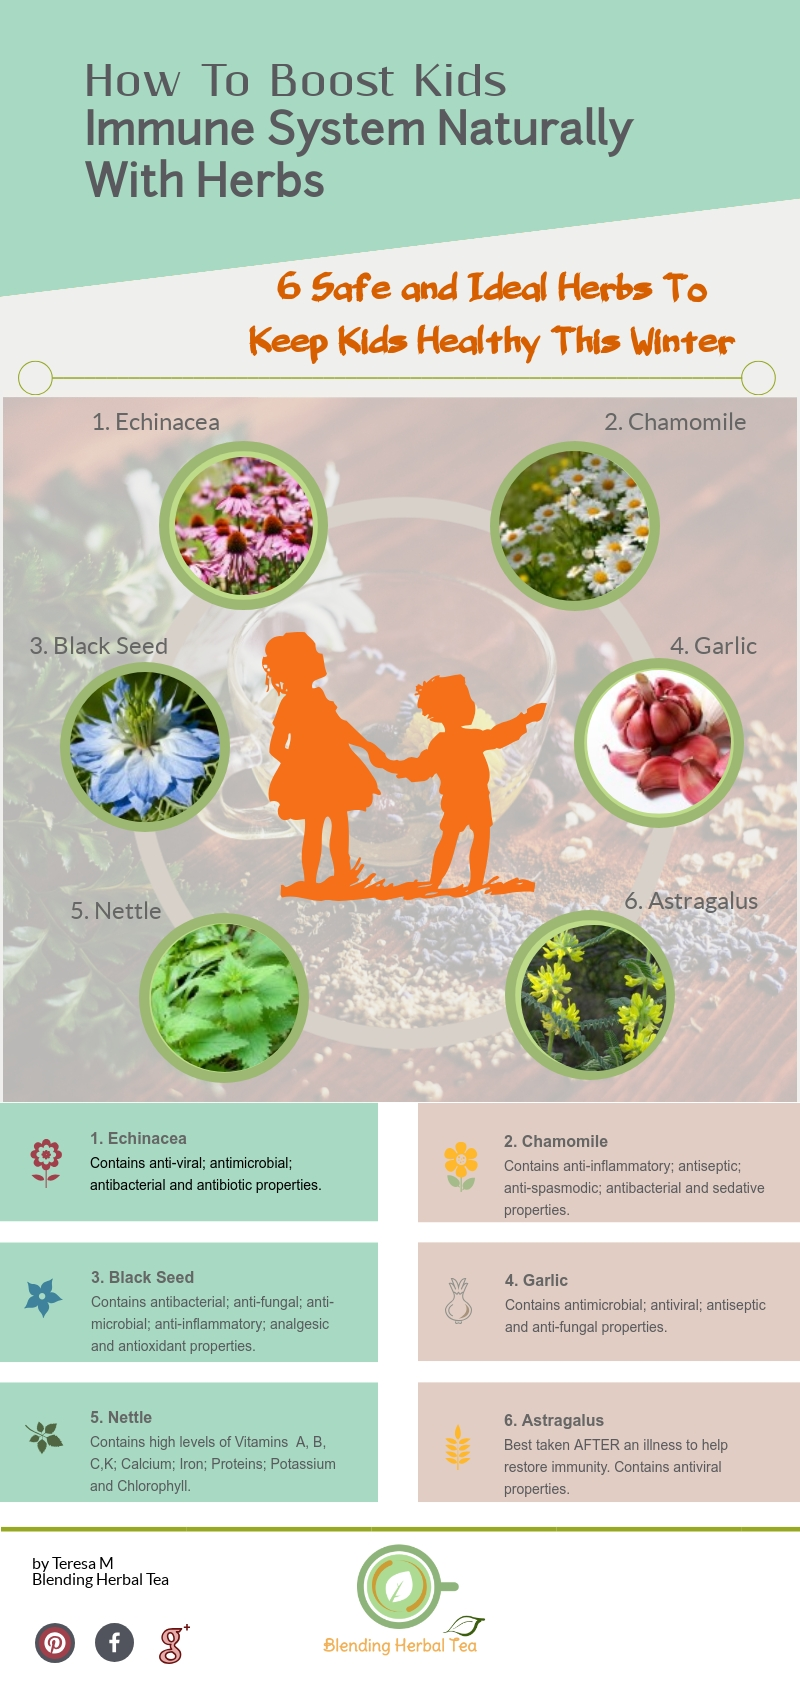 How To Boost Kids System Naturally With Herbs